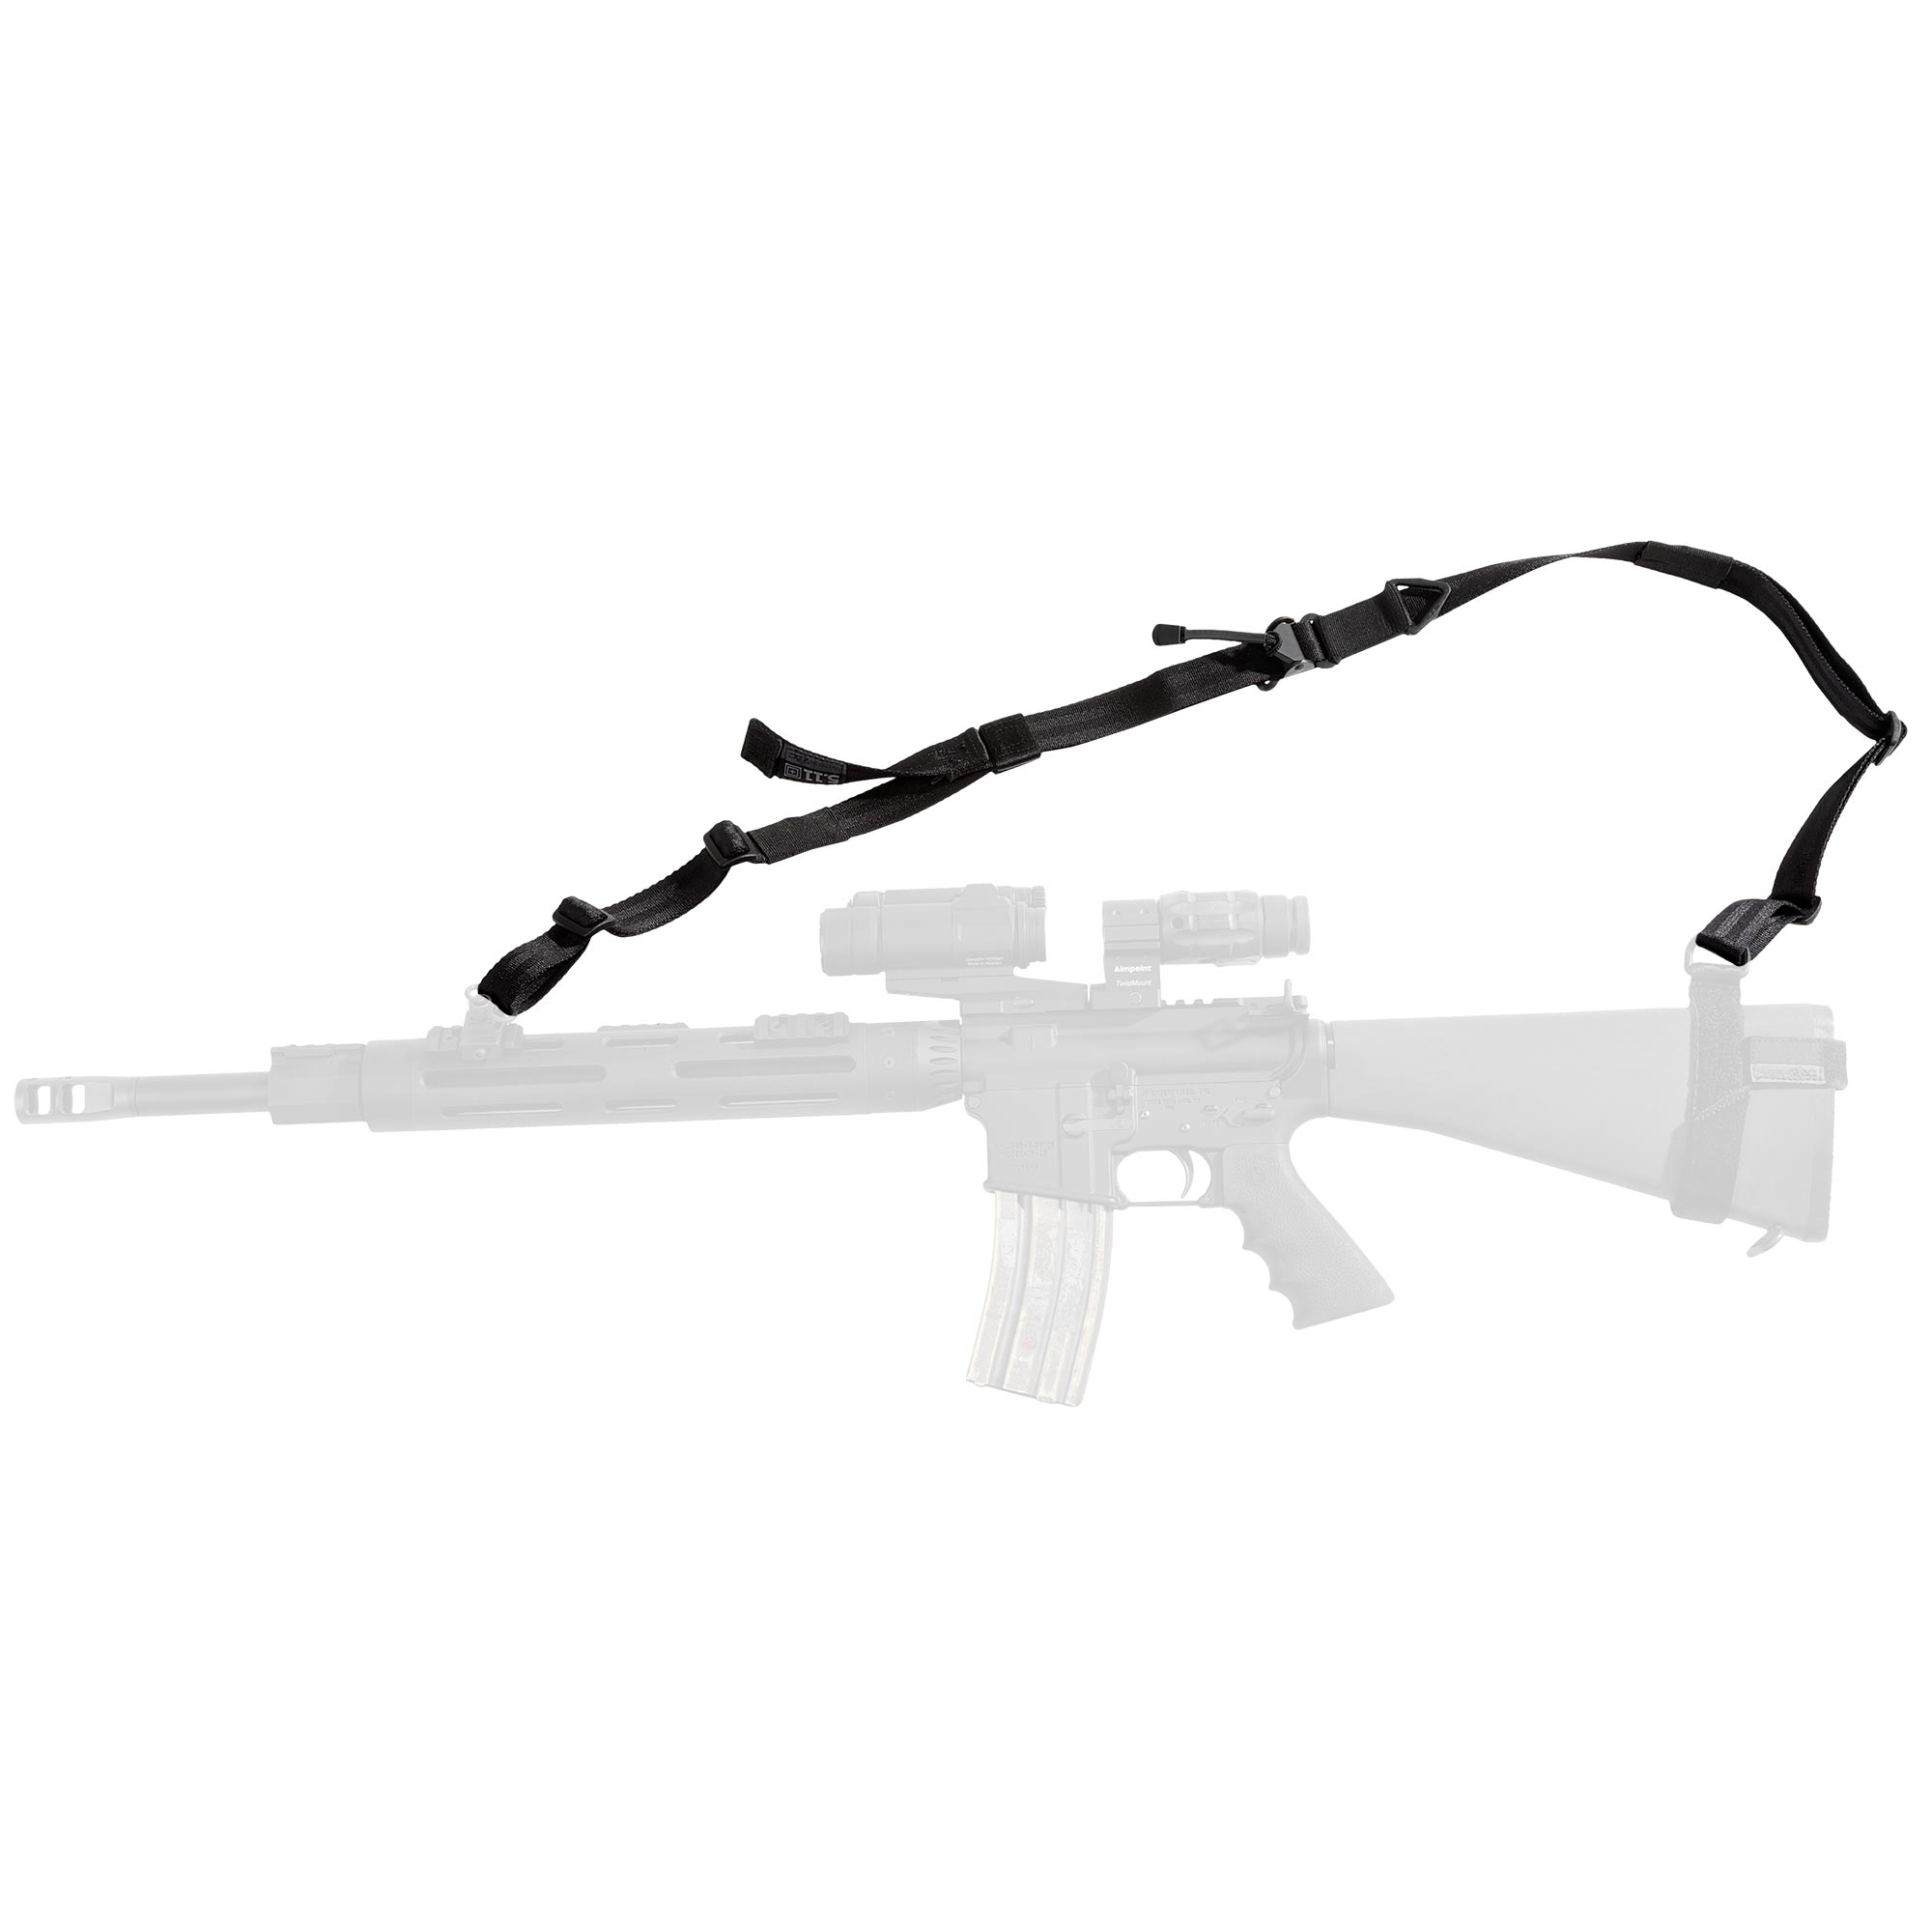 5.11 Tactical VTAC 2 Point Sling - 5.11 Tactical 0758529bb